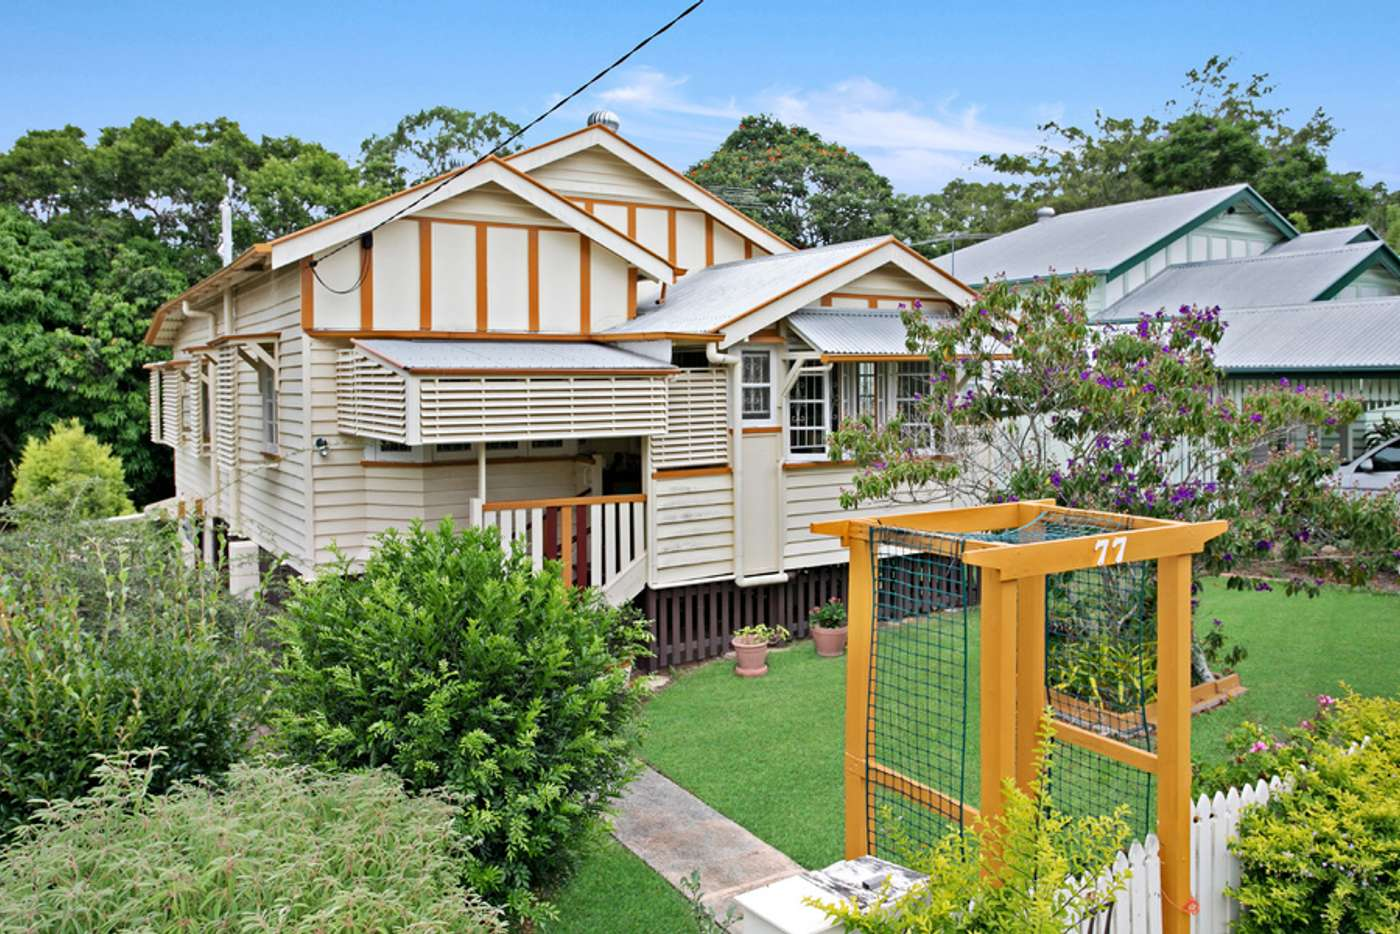 Main view of Homely house listing, 77 Davidson Street, Newmarket QLD 4051